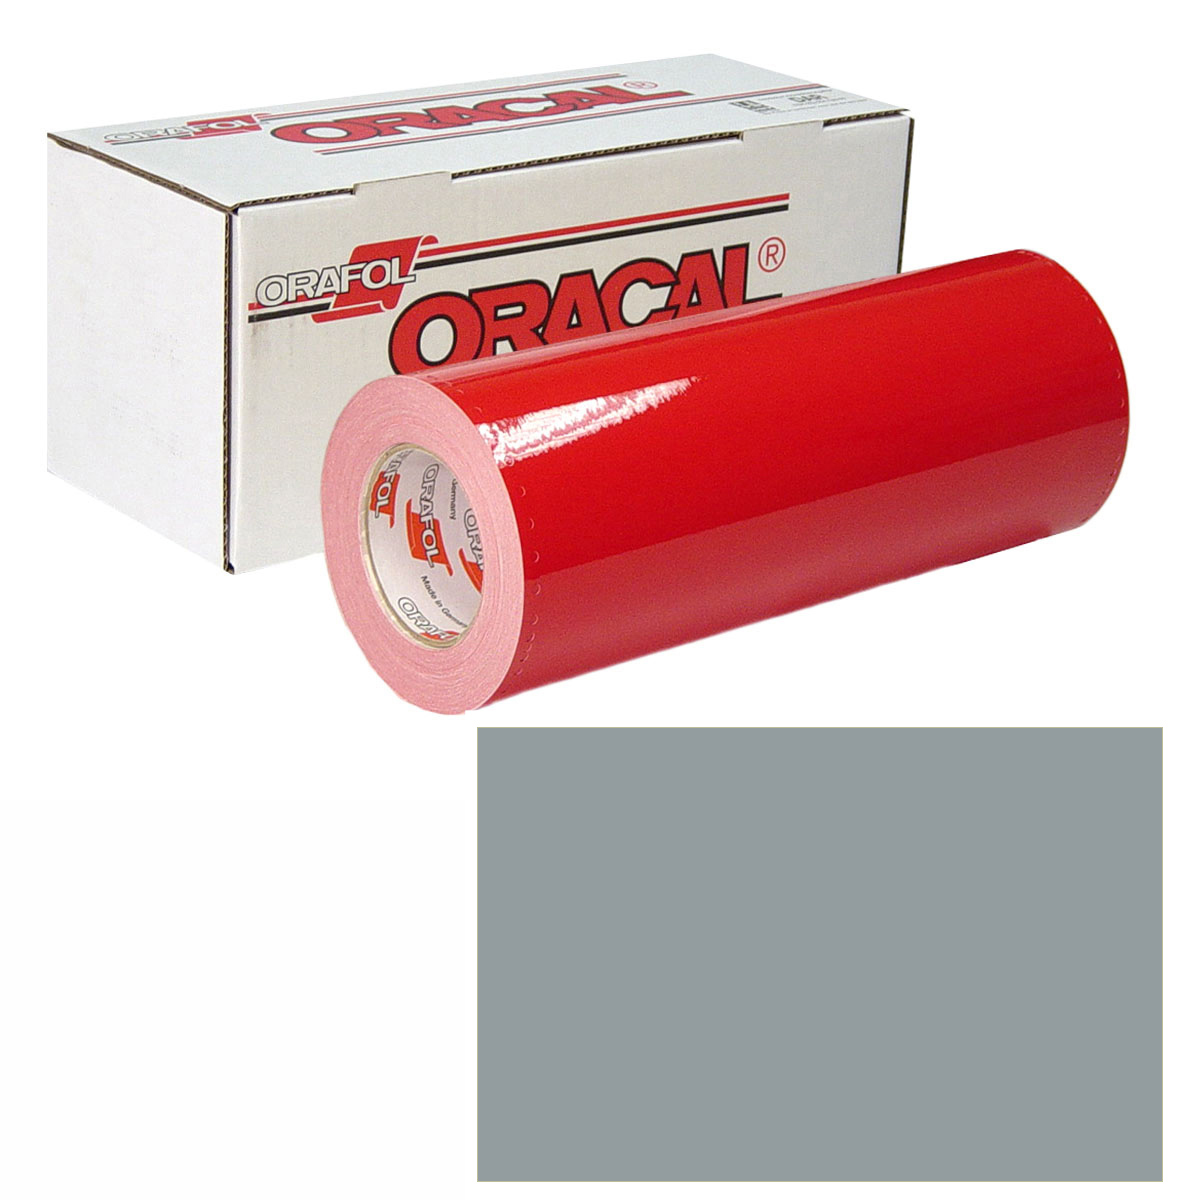 ORACAL 951 15in X 10yd 713 Iron Grey